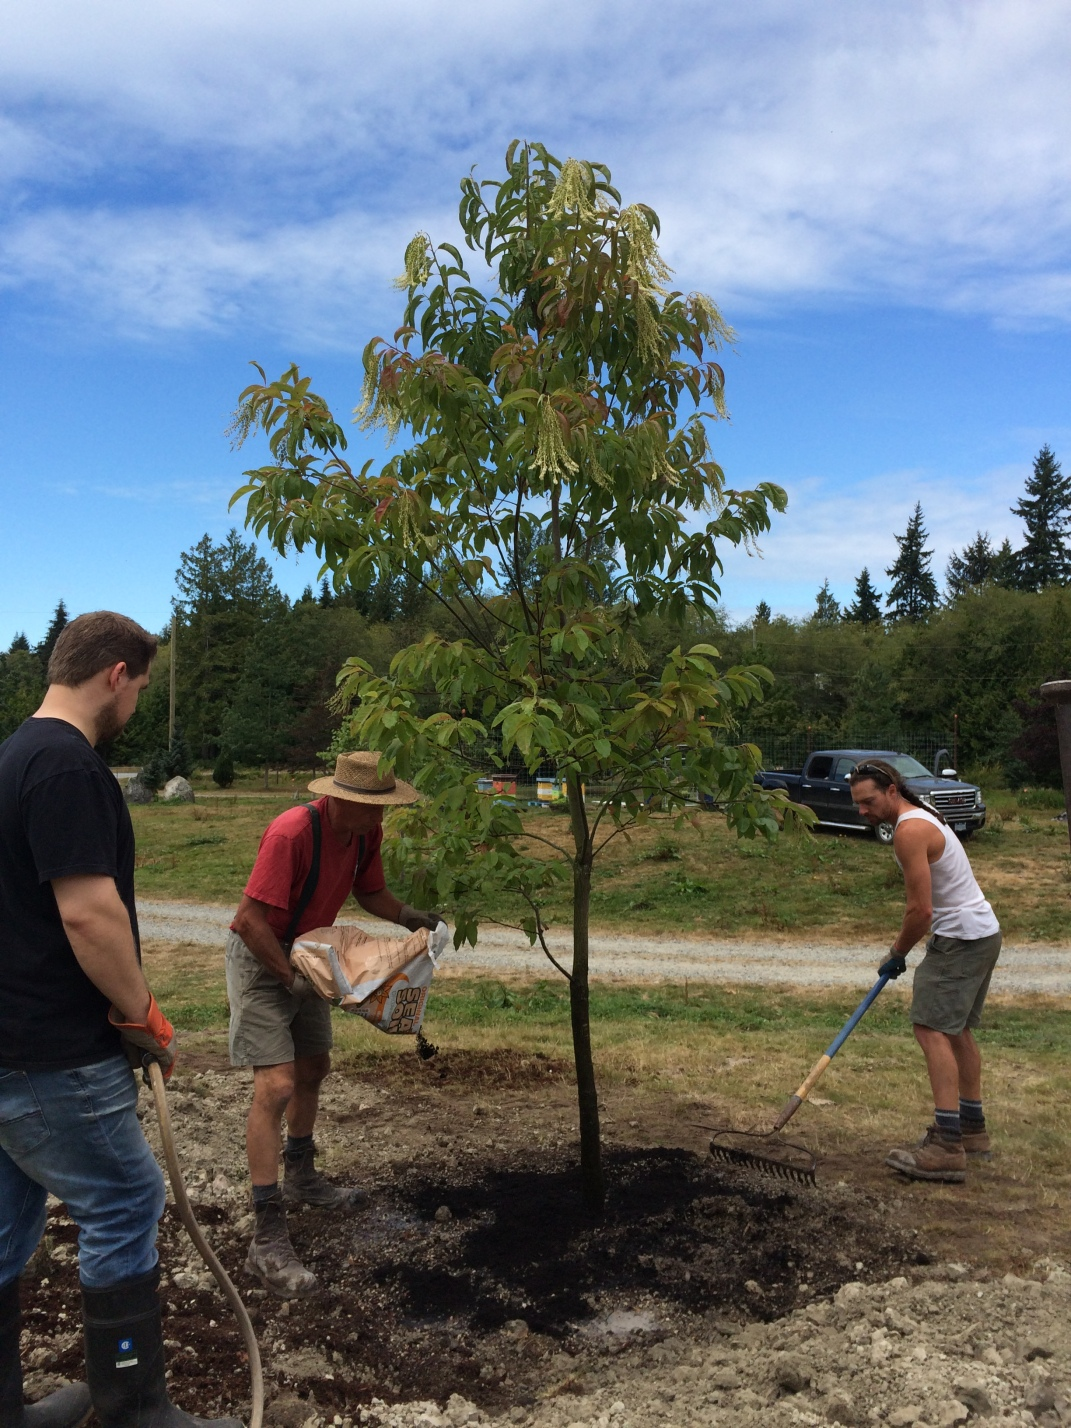 1 of 6 trees for the bees at this location